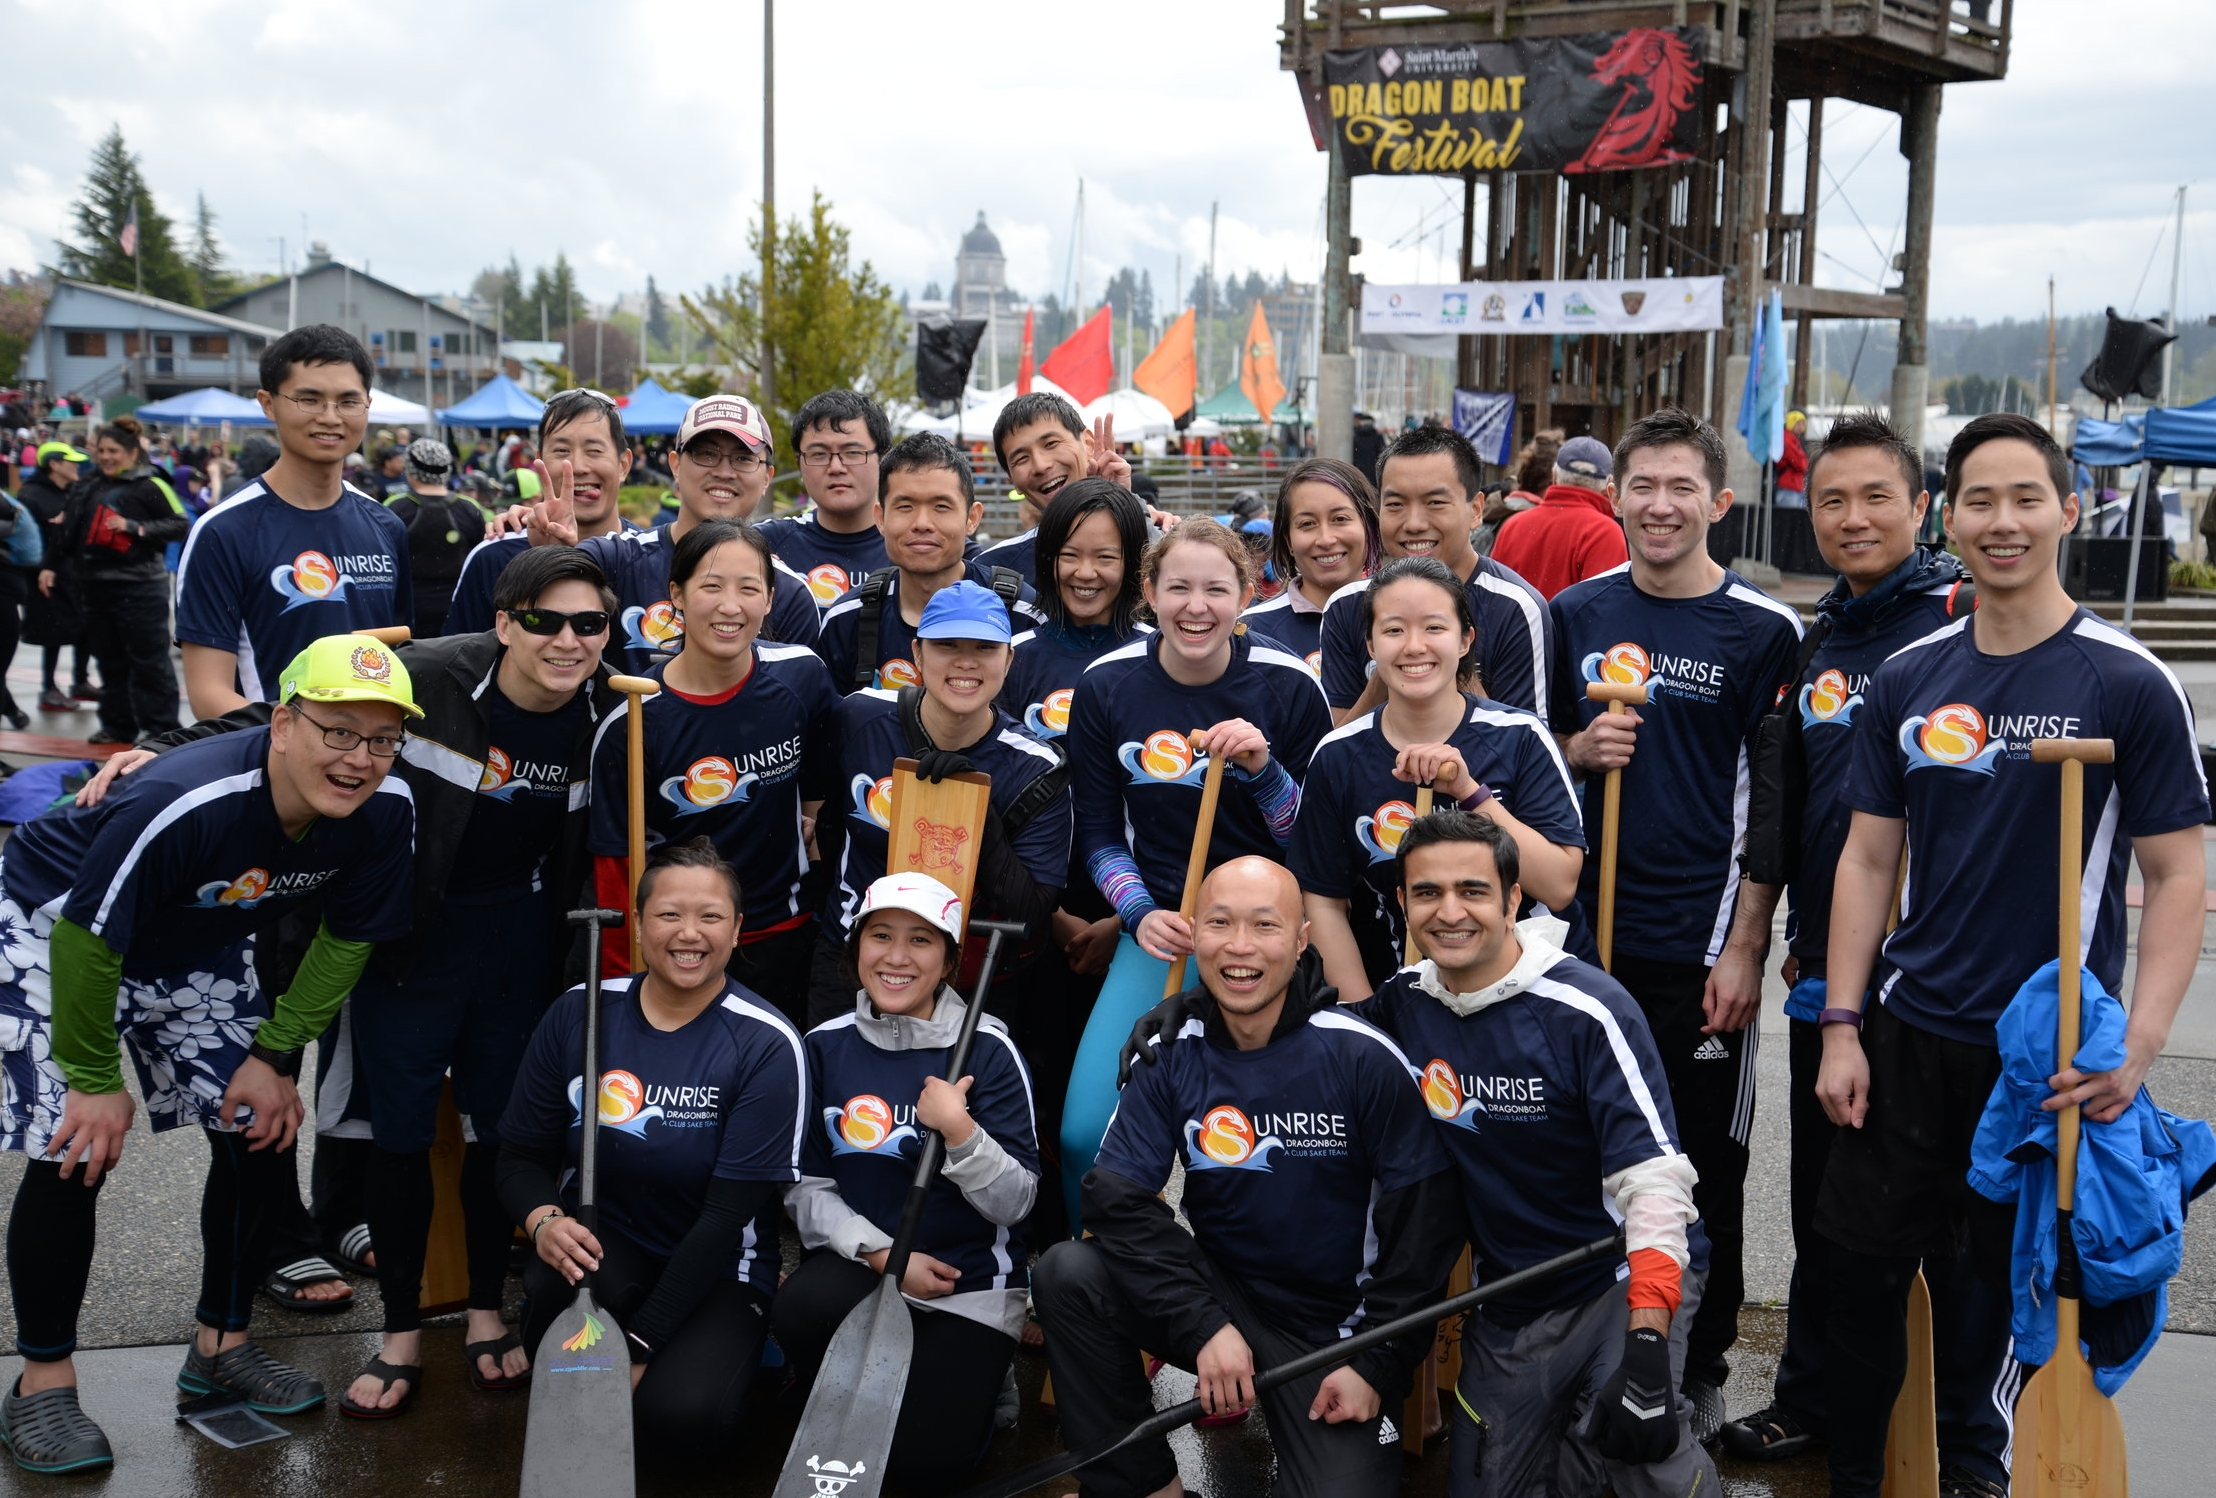 Diana Wong  (in the blue cap) with her Dragon Boat team  Puget Sound Discovery, Class of 2015